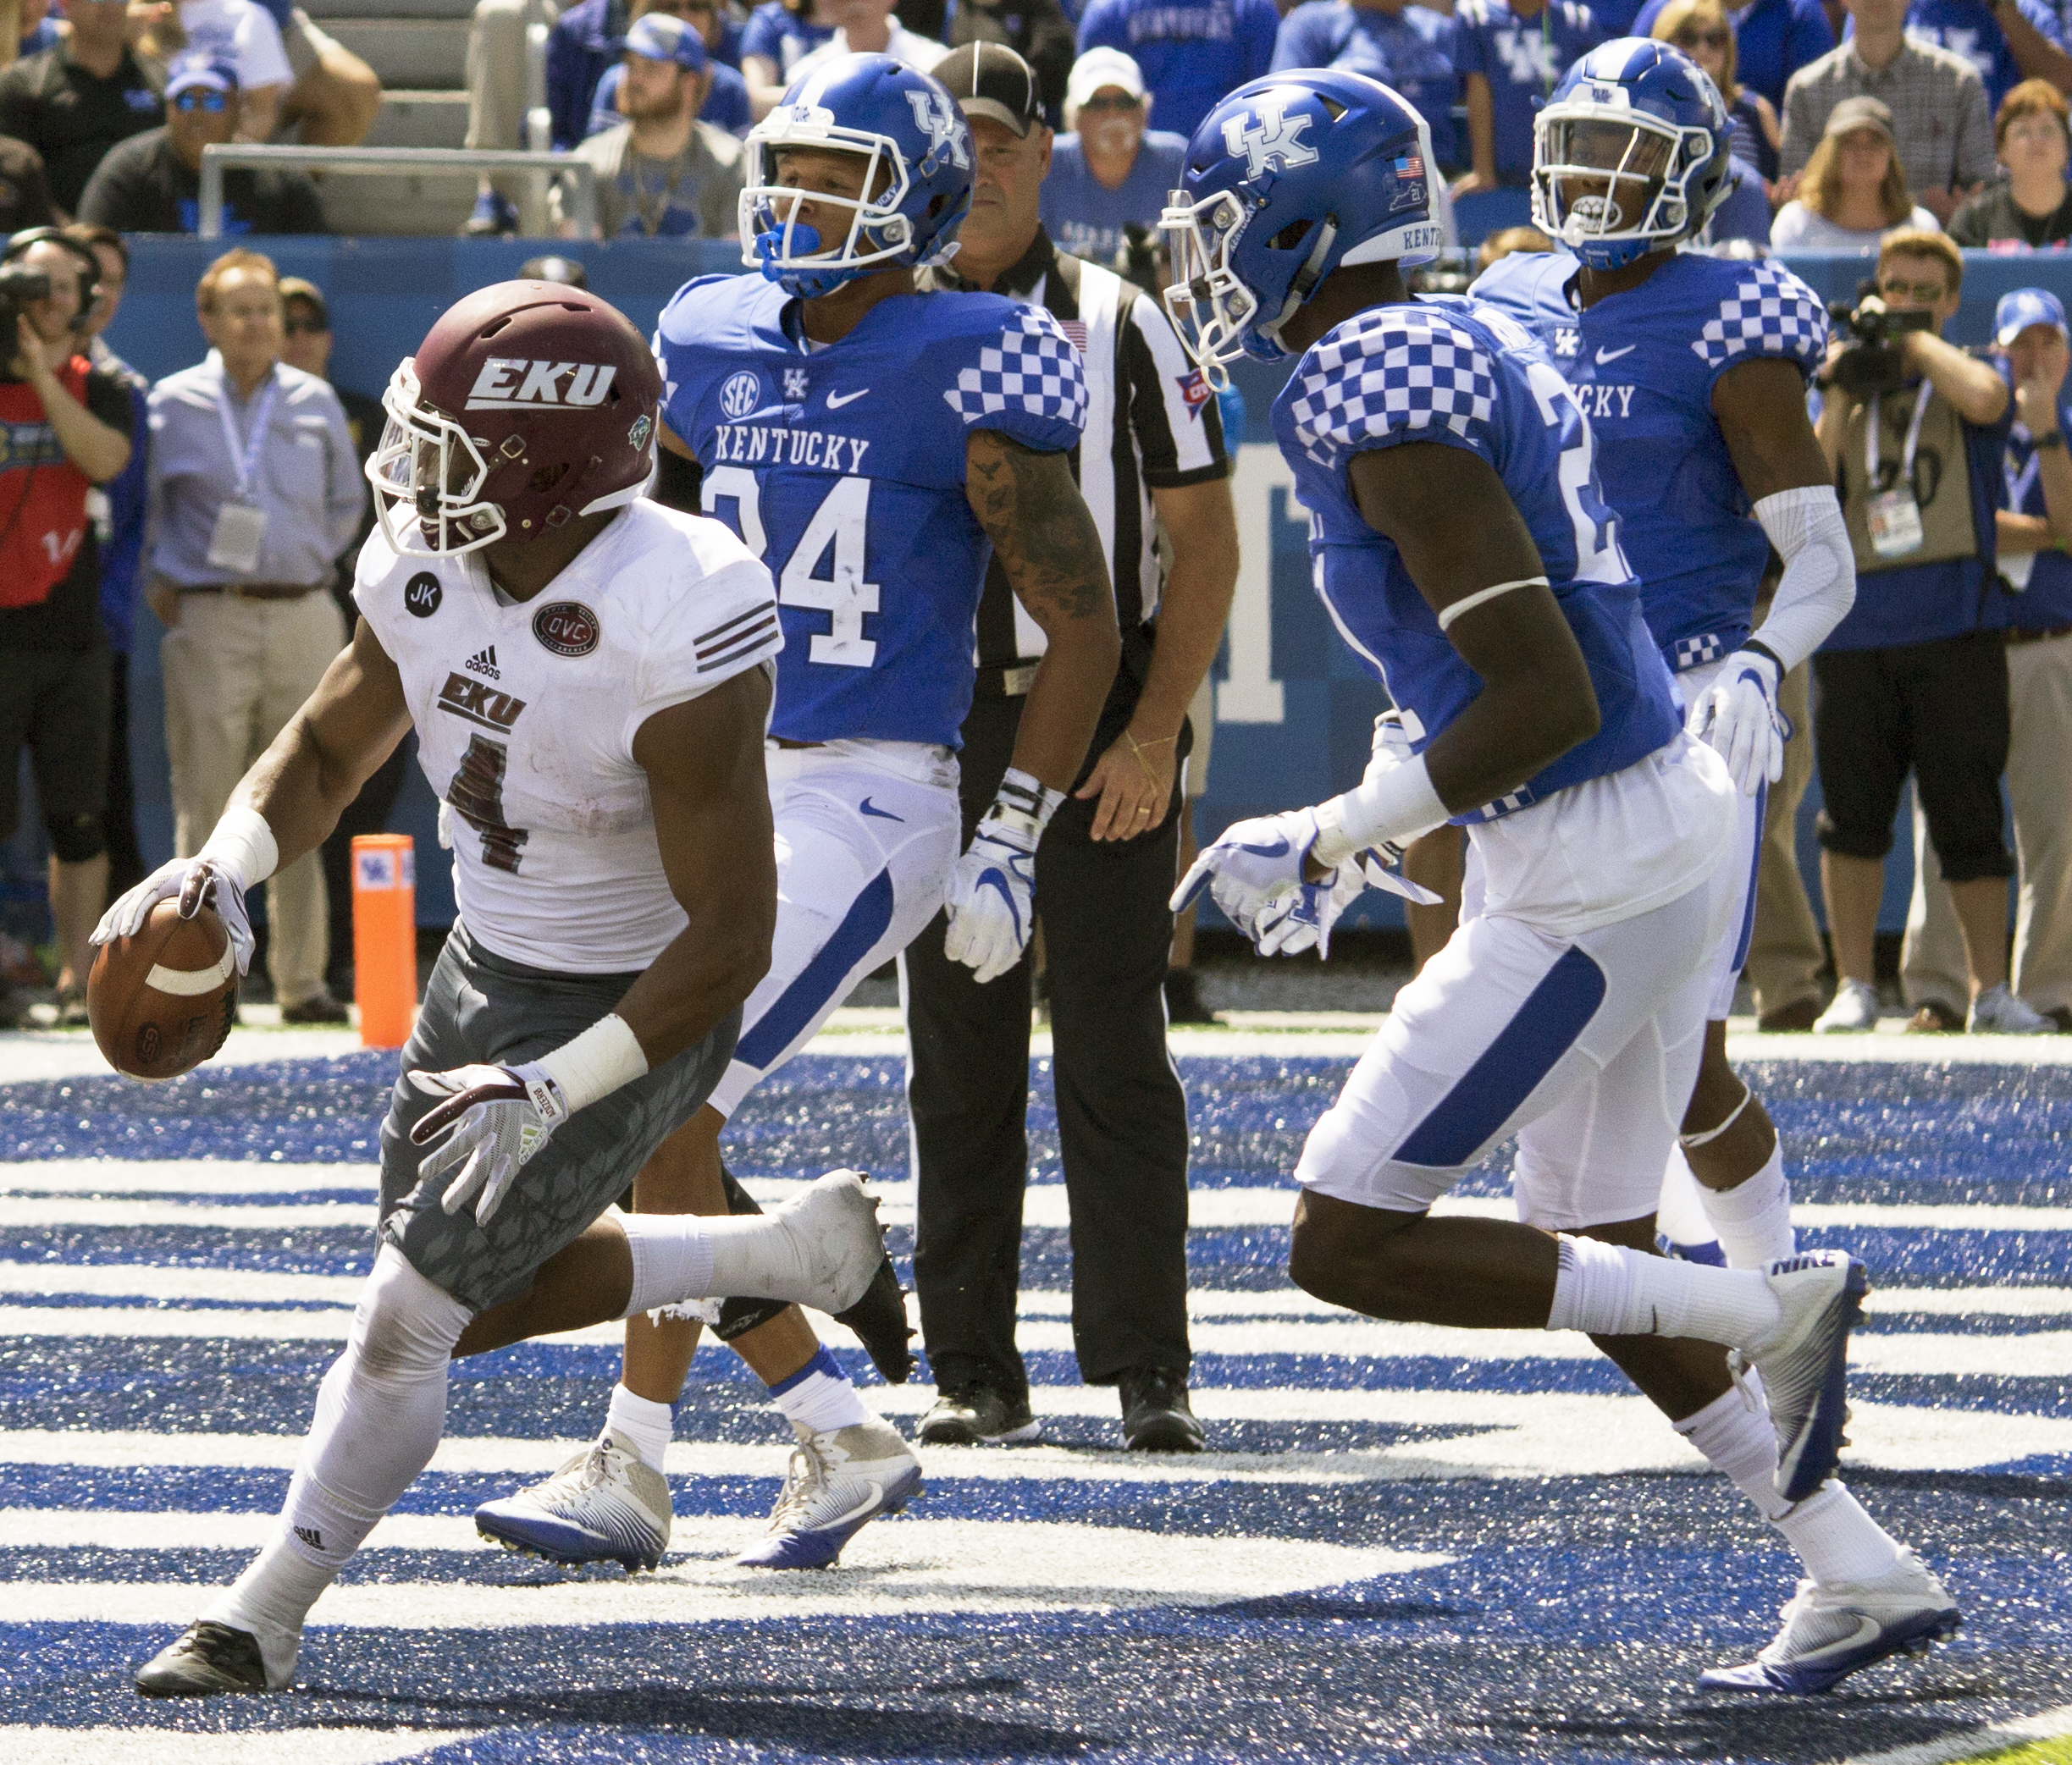 EKU Leads For Nearly Three Quarters, Can't Hold Off UK Comeback